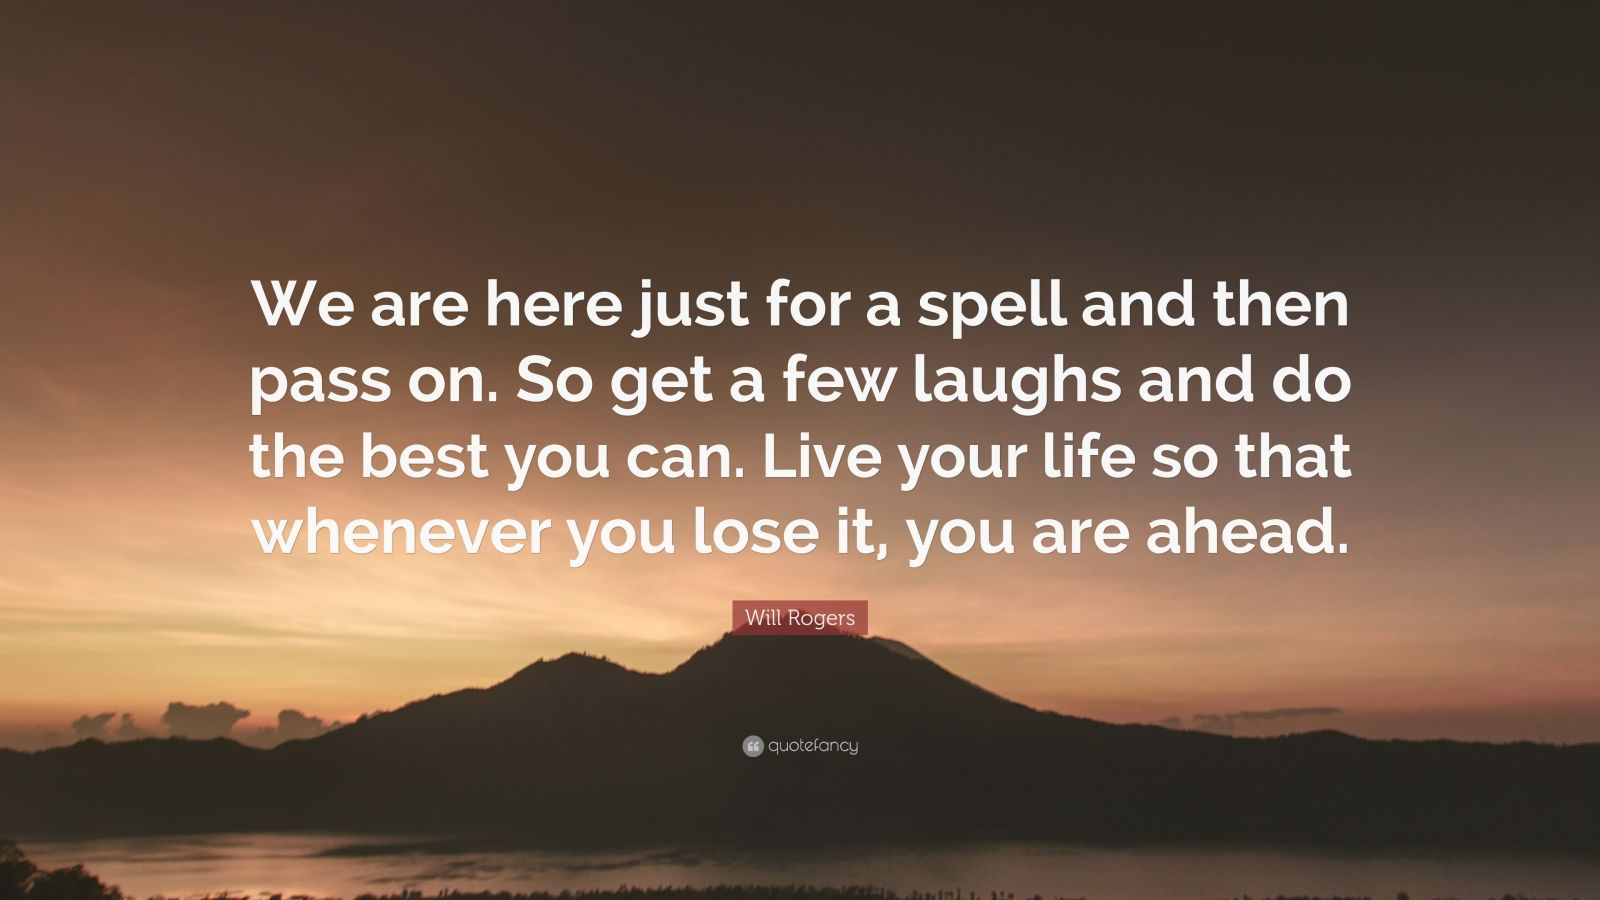 """Will Rogers Quote: """"We are here just for a spell and then pass on. So get a few laughs and do the best you can. Live your life so that whenever you lose it, you are ahead."""""""